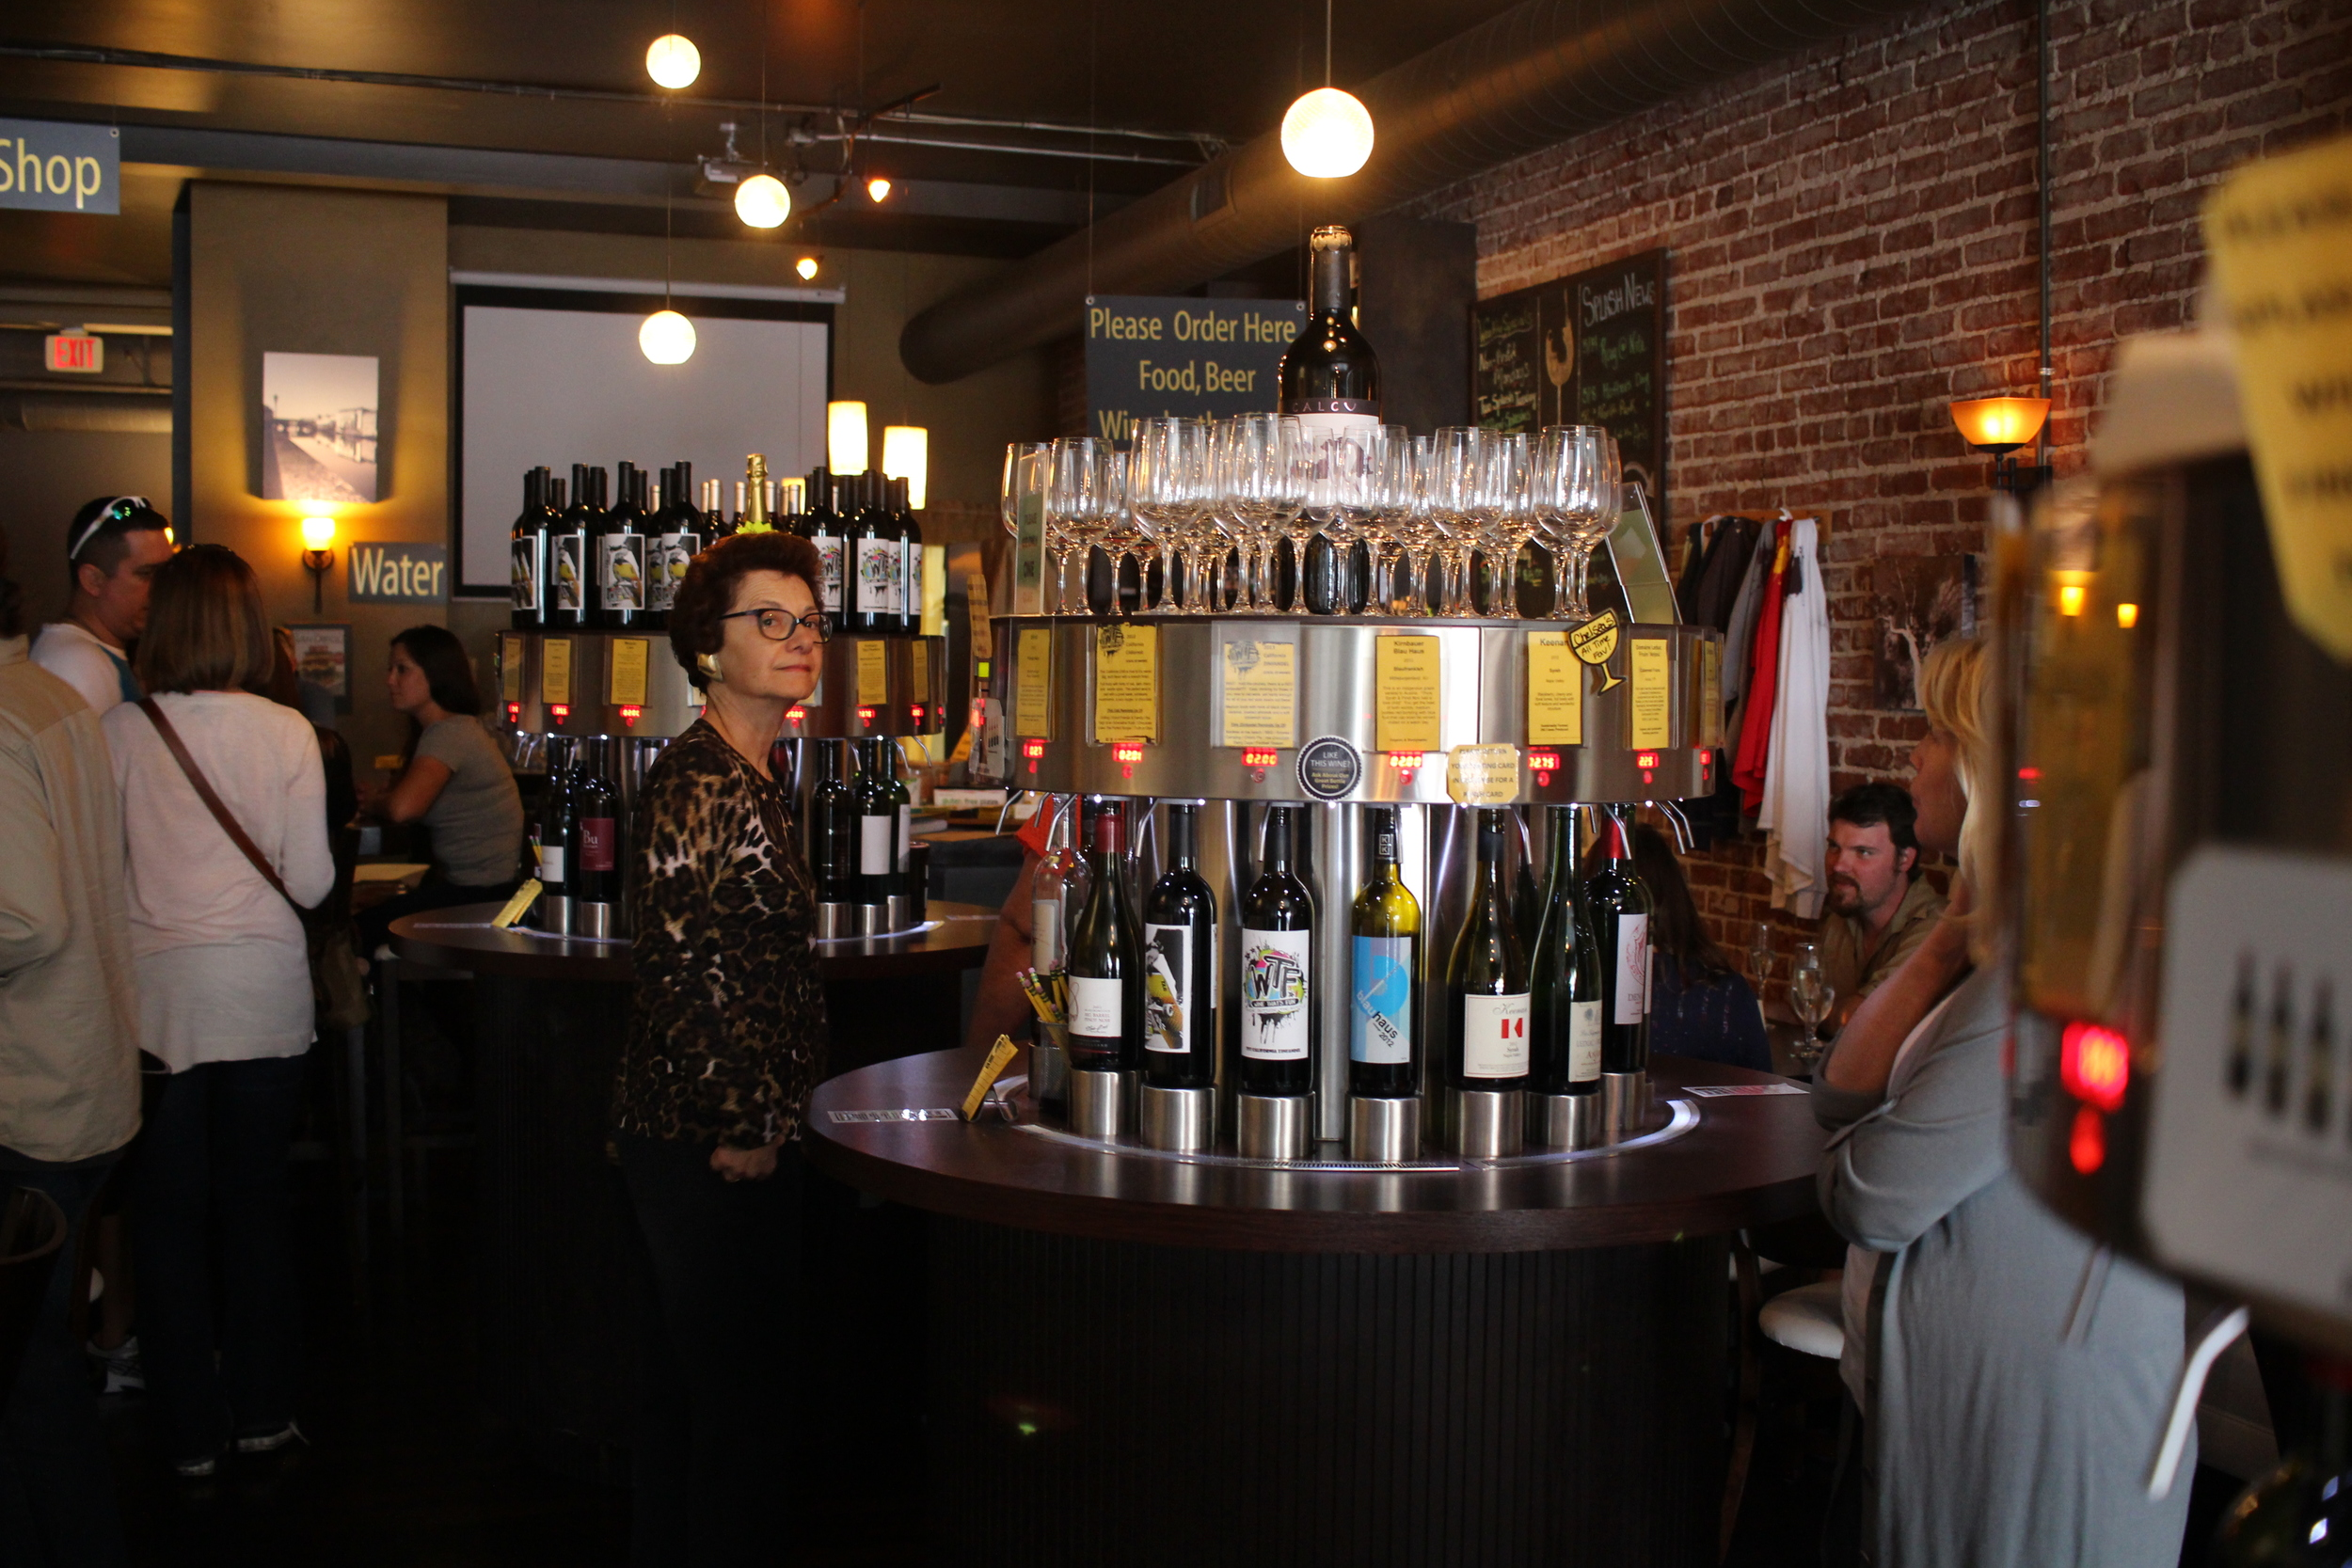 Sample some wine at Splash Wine Lounge